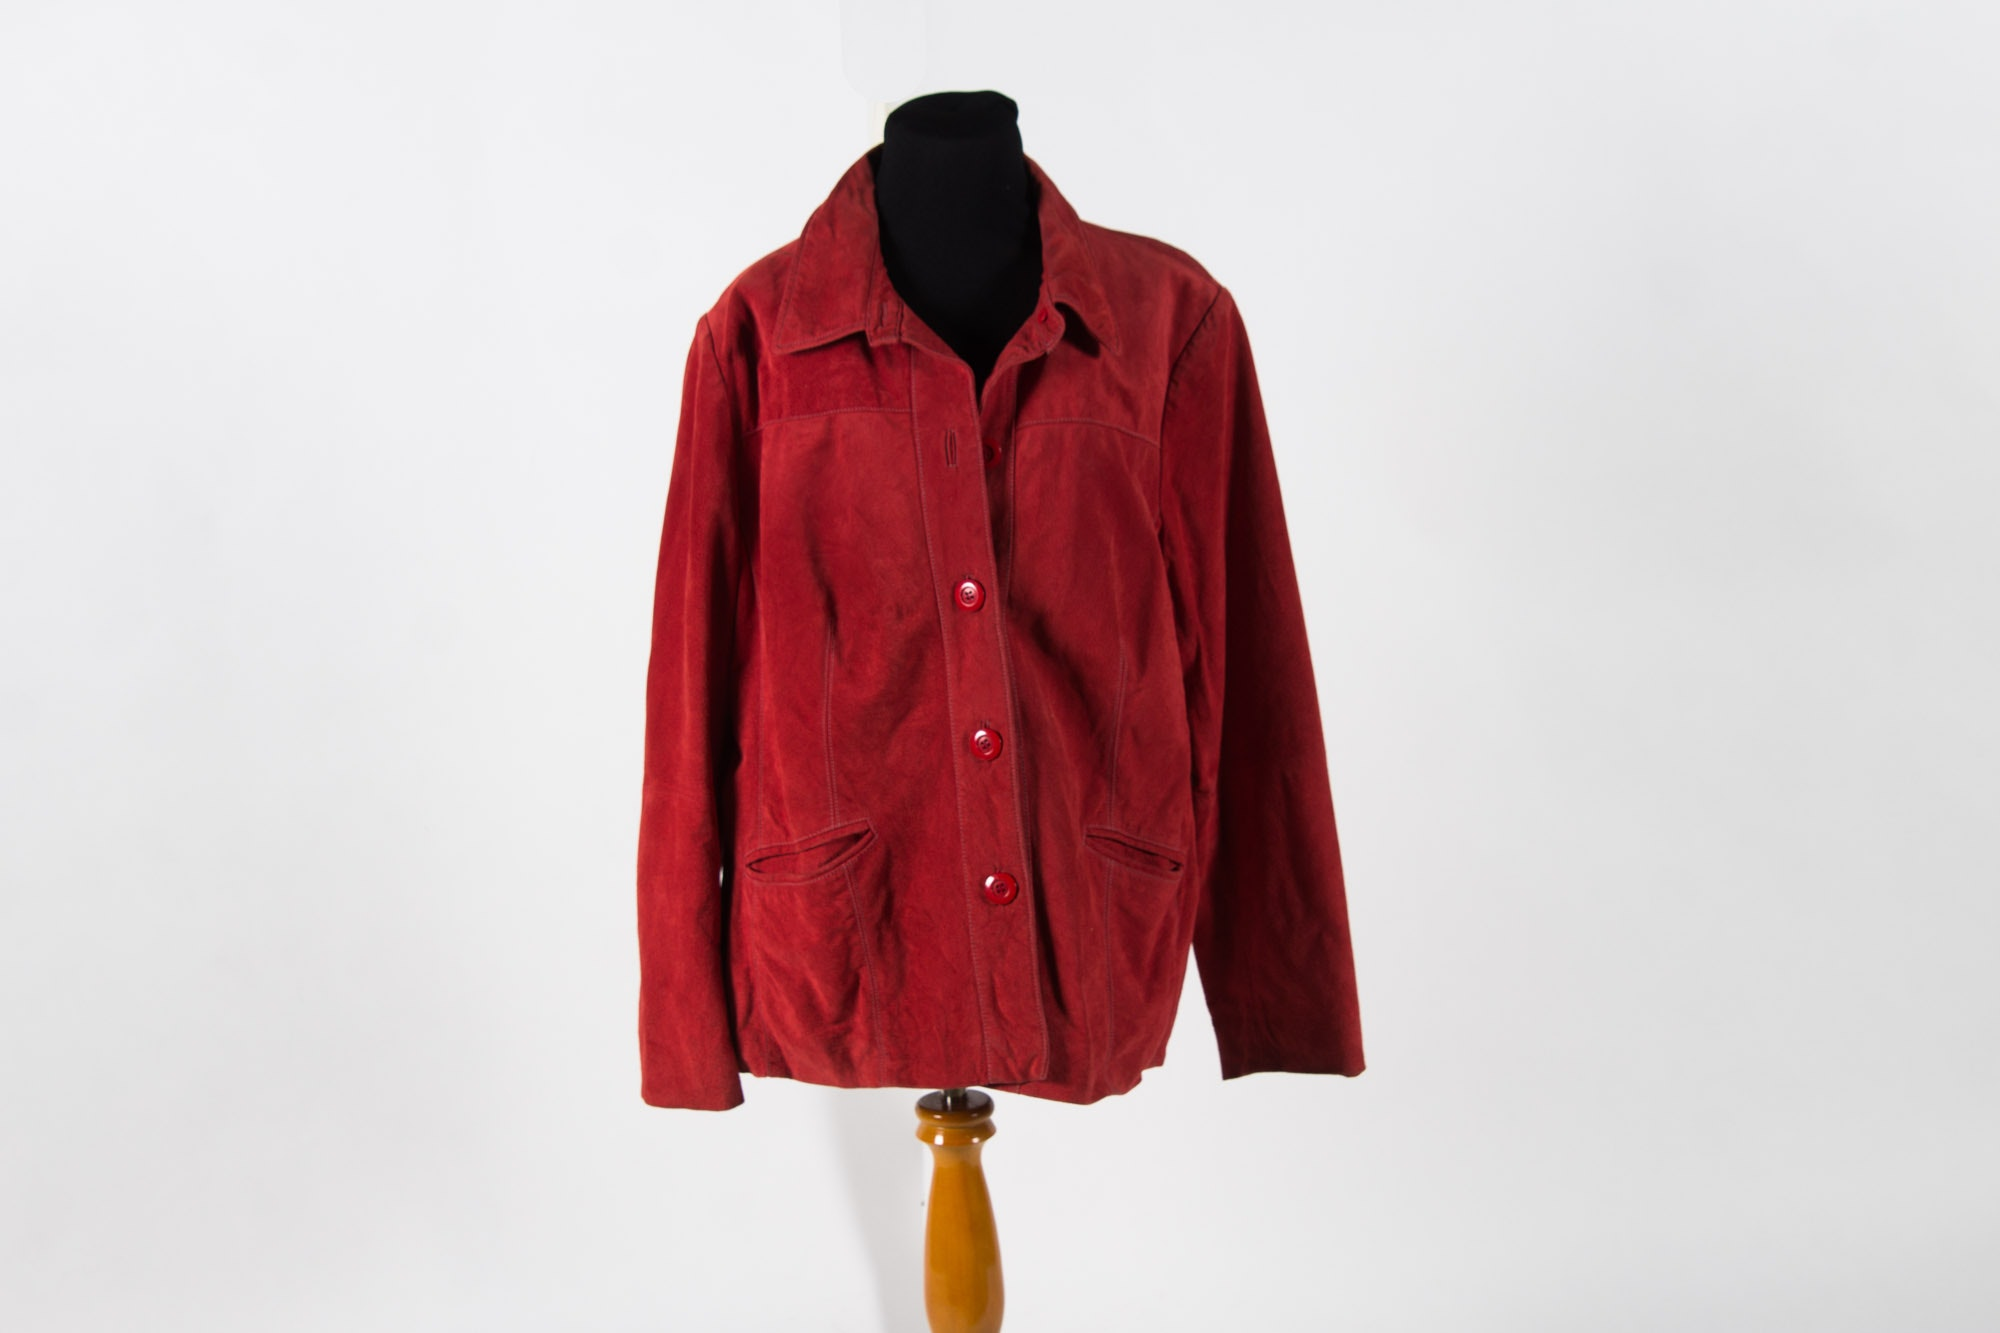 TravelSmith Red Leather Women's Jacket